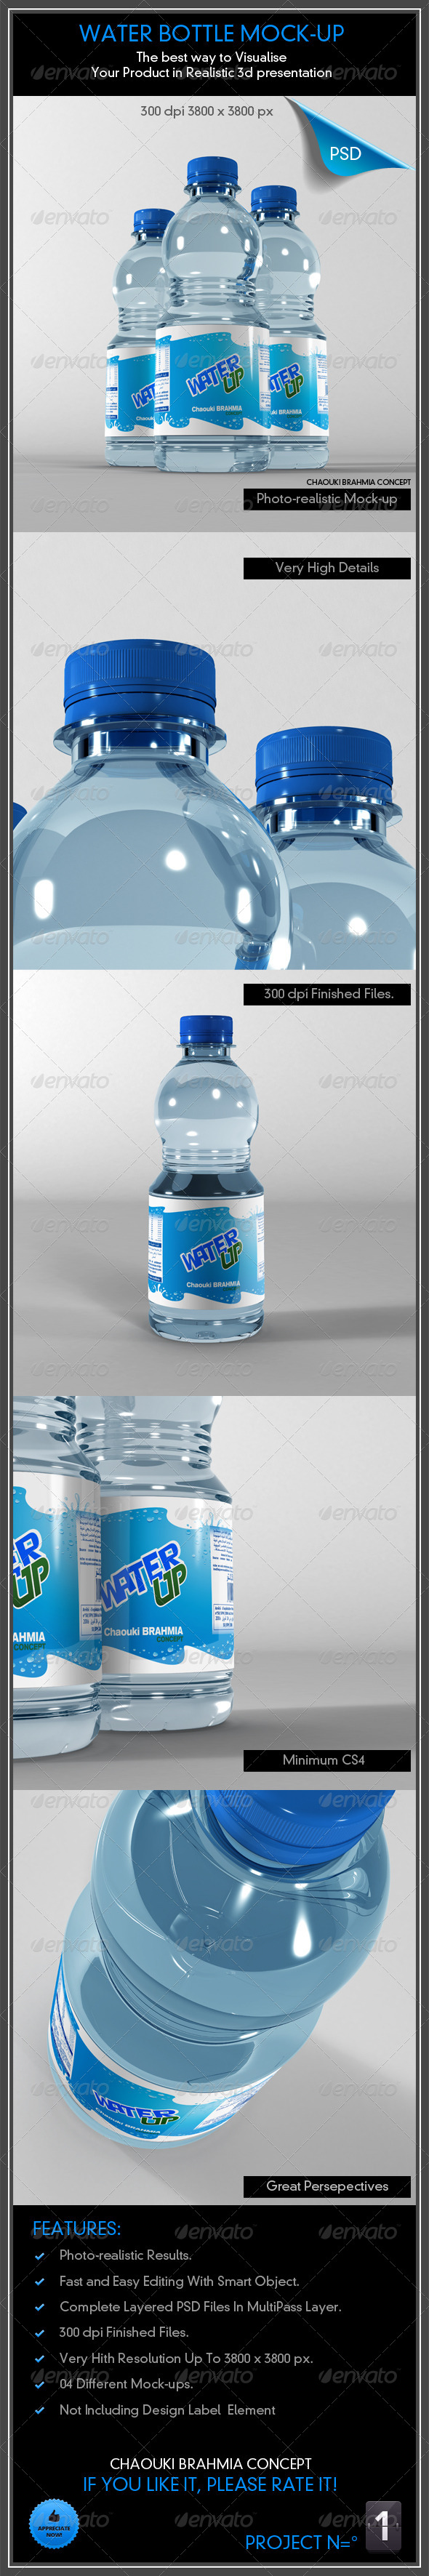 GraphicRiver Water Bottle Mock-Up 4869379